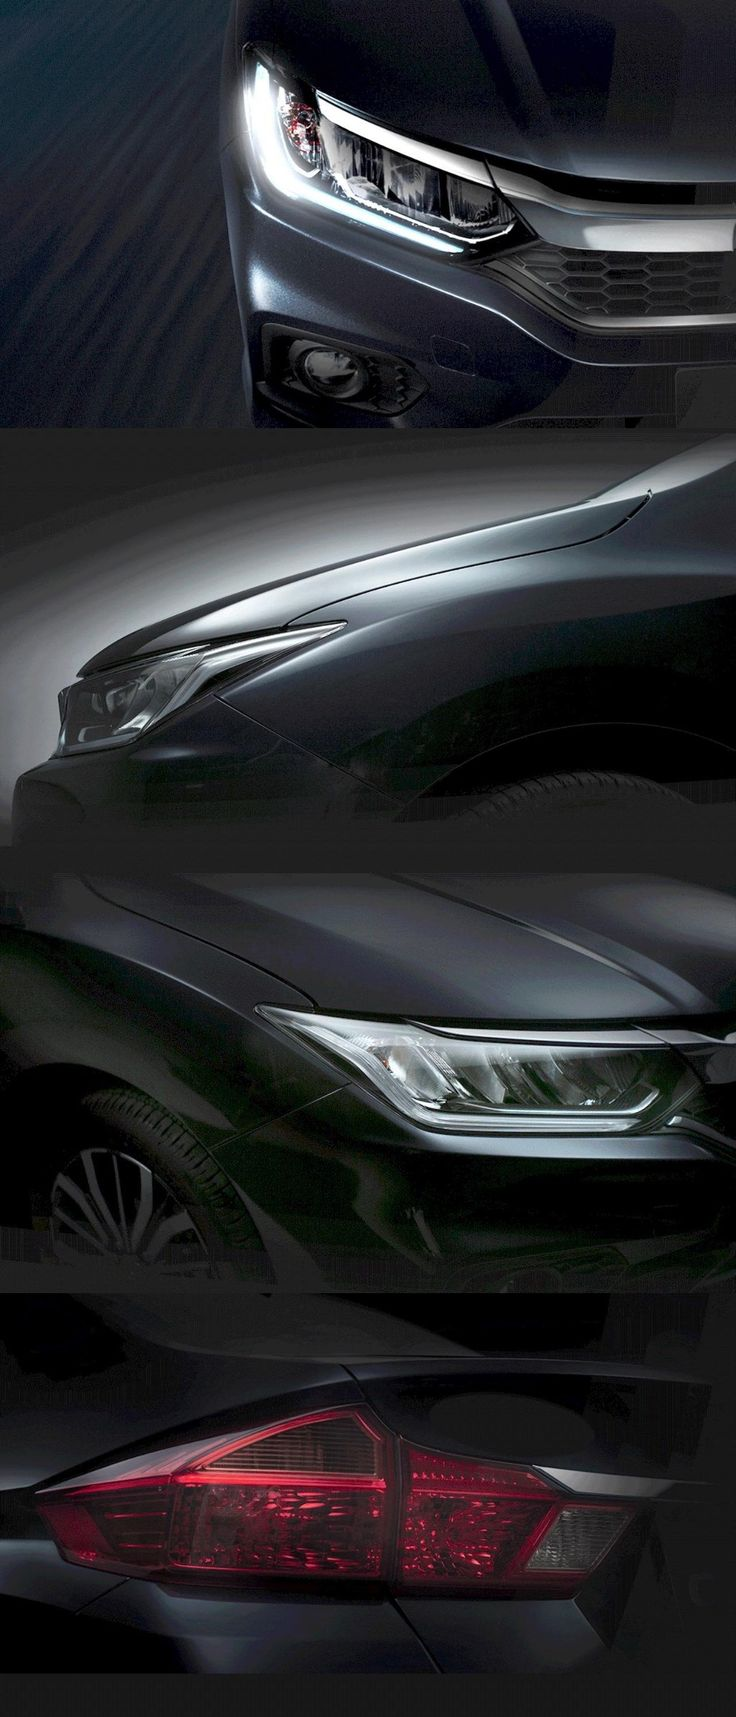 Facelift Honda City Teasers Released Prior to Launch in January 2017